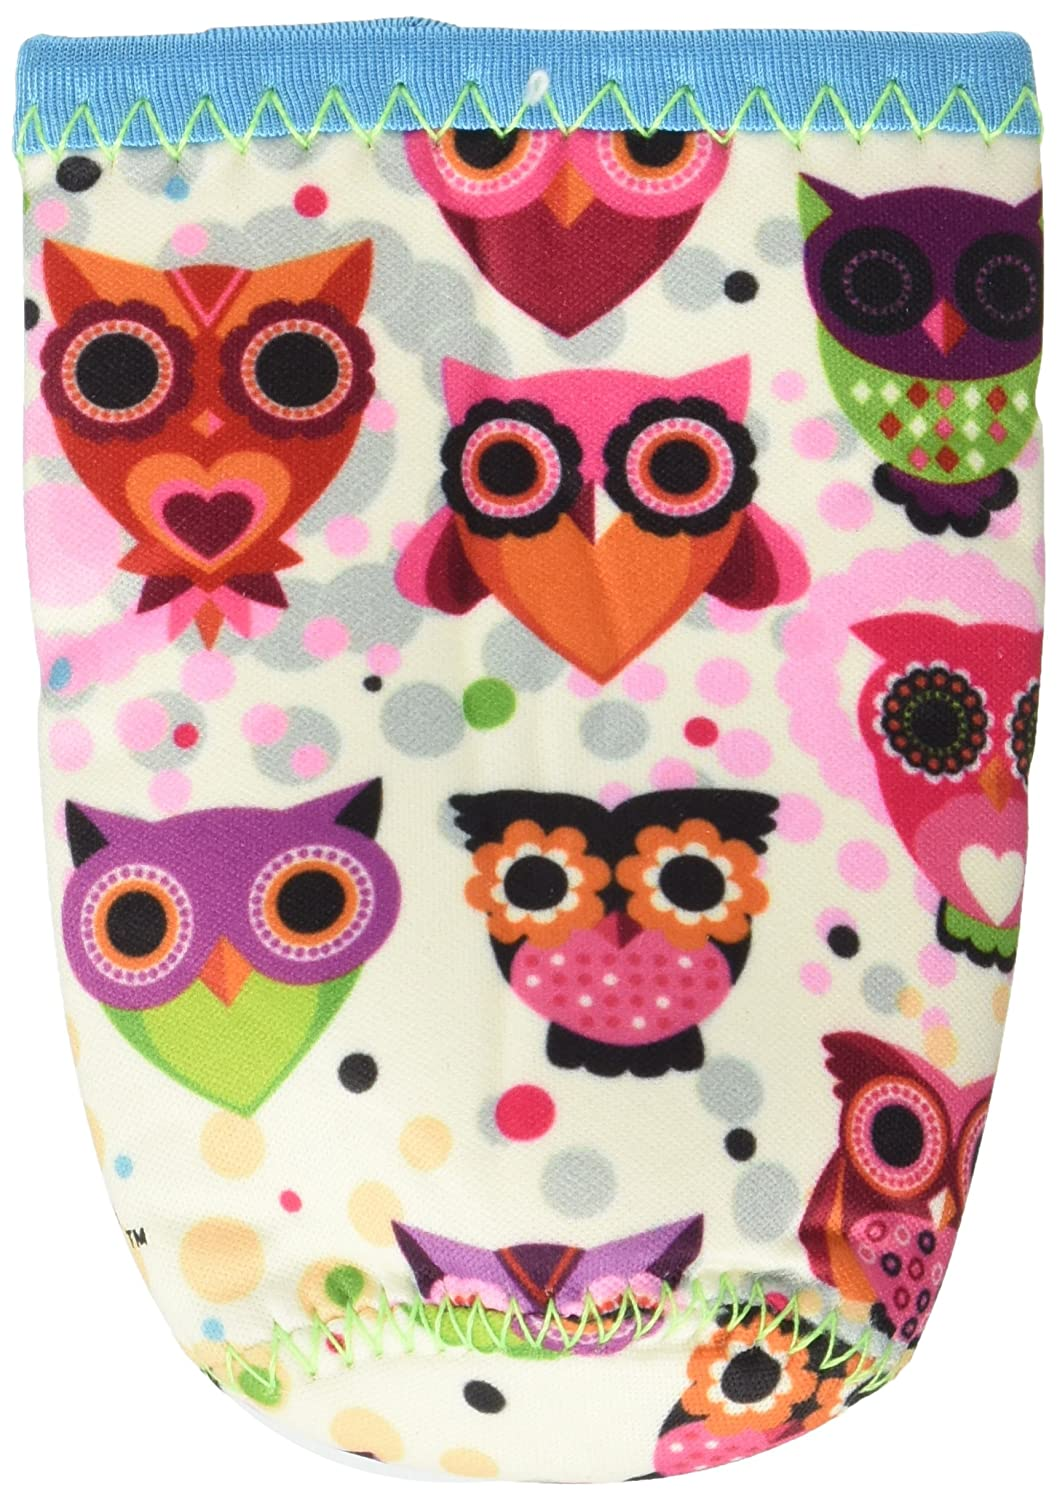 今季一番 Kidzikoo - by #1 Neoprene Baby Bottle Owls/Sippy Cup Bottle/Sippy Insulator Cooler Coolie - Owls by Kidzikoo B0097C3UWM, アウトレット一番.:b7613189 --- a0267596.xsph.ru